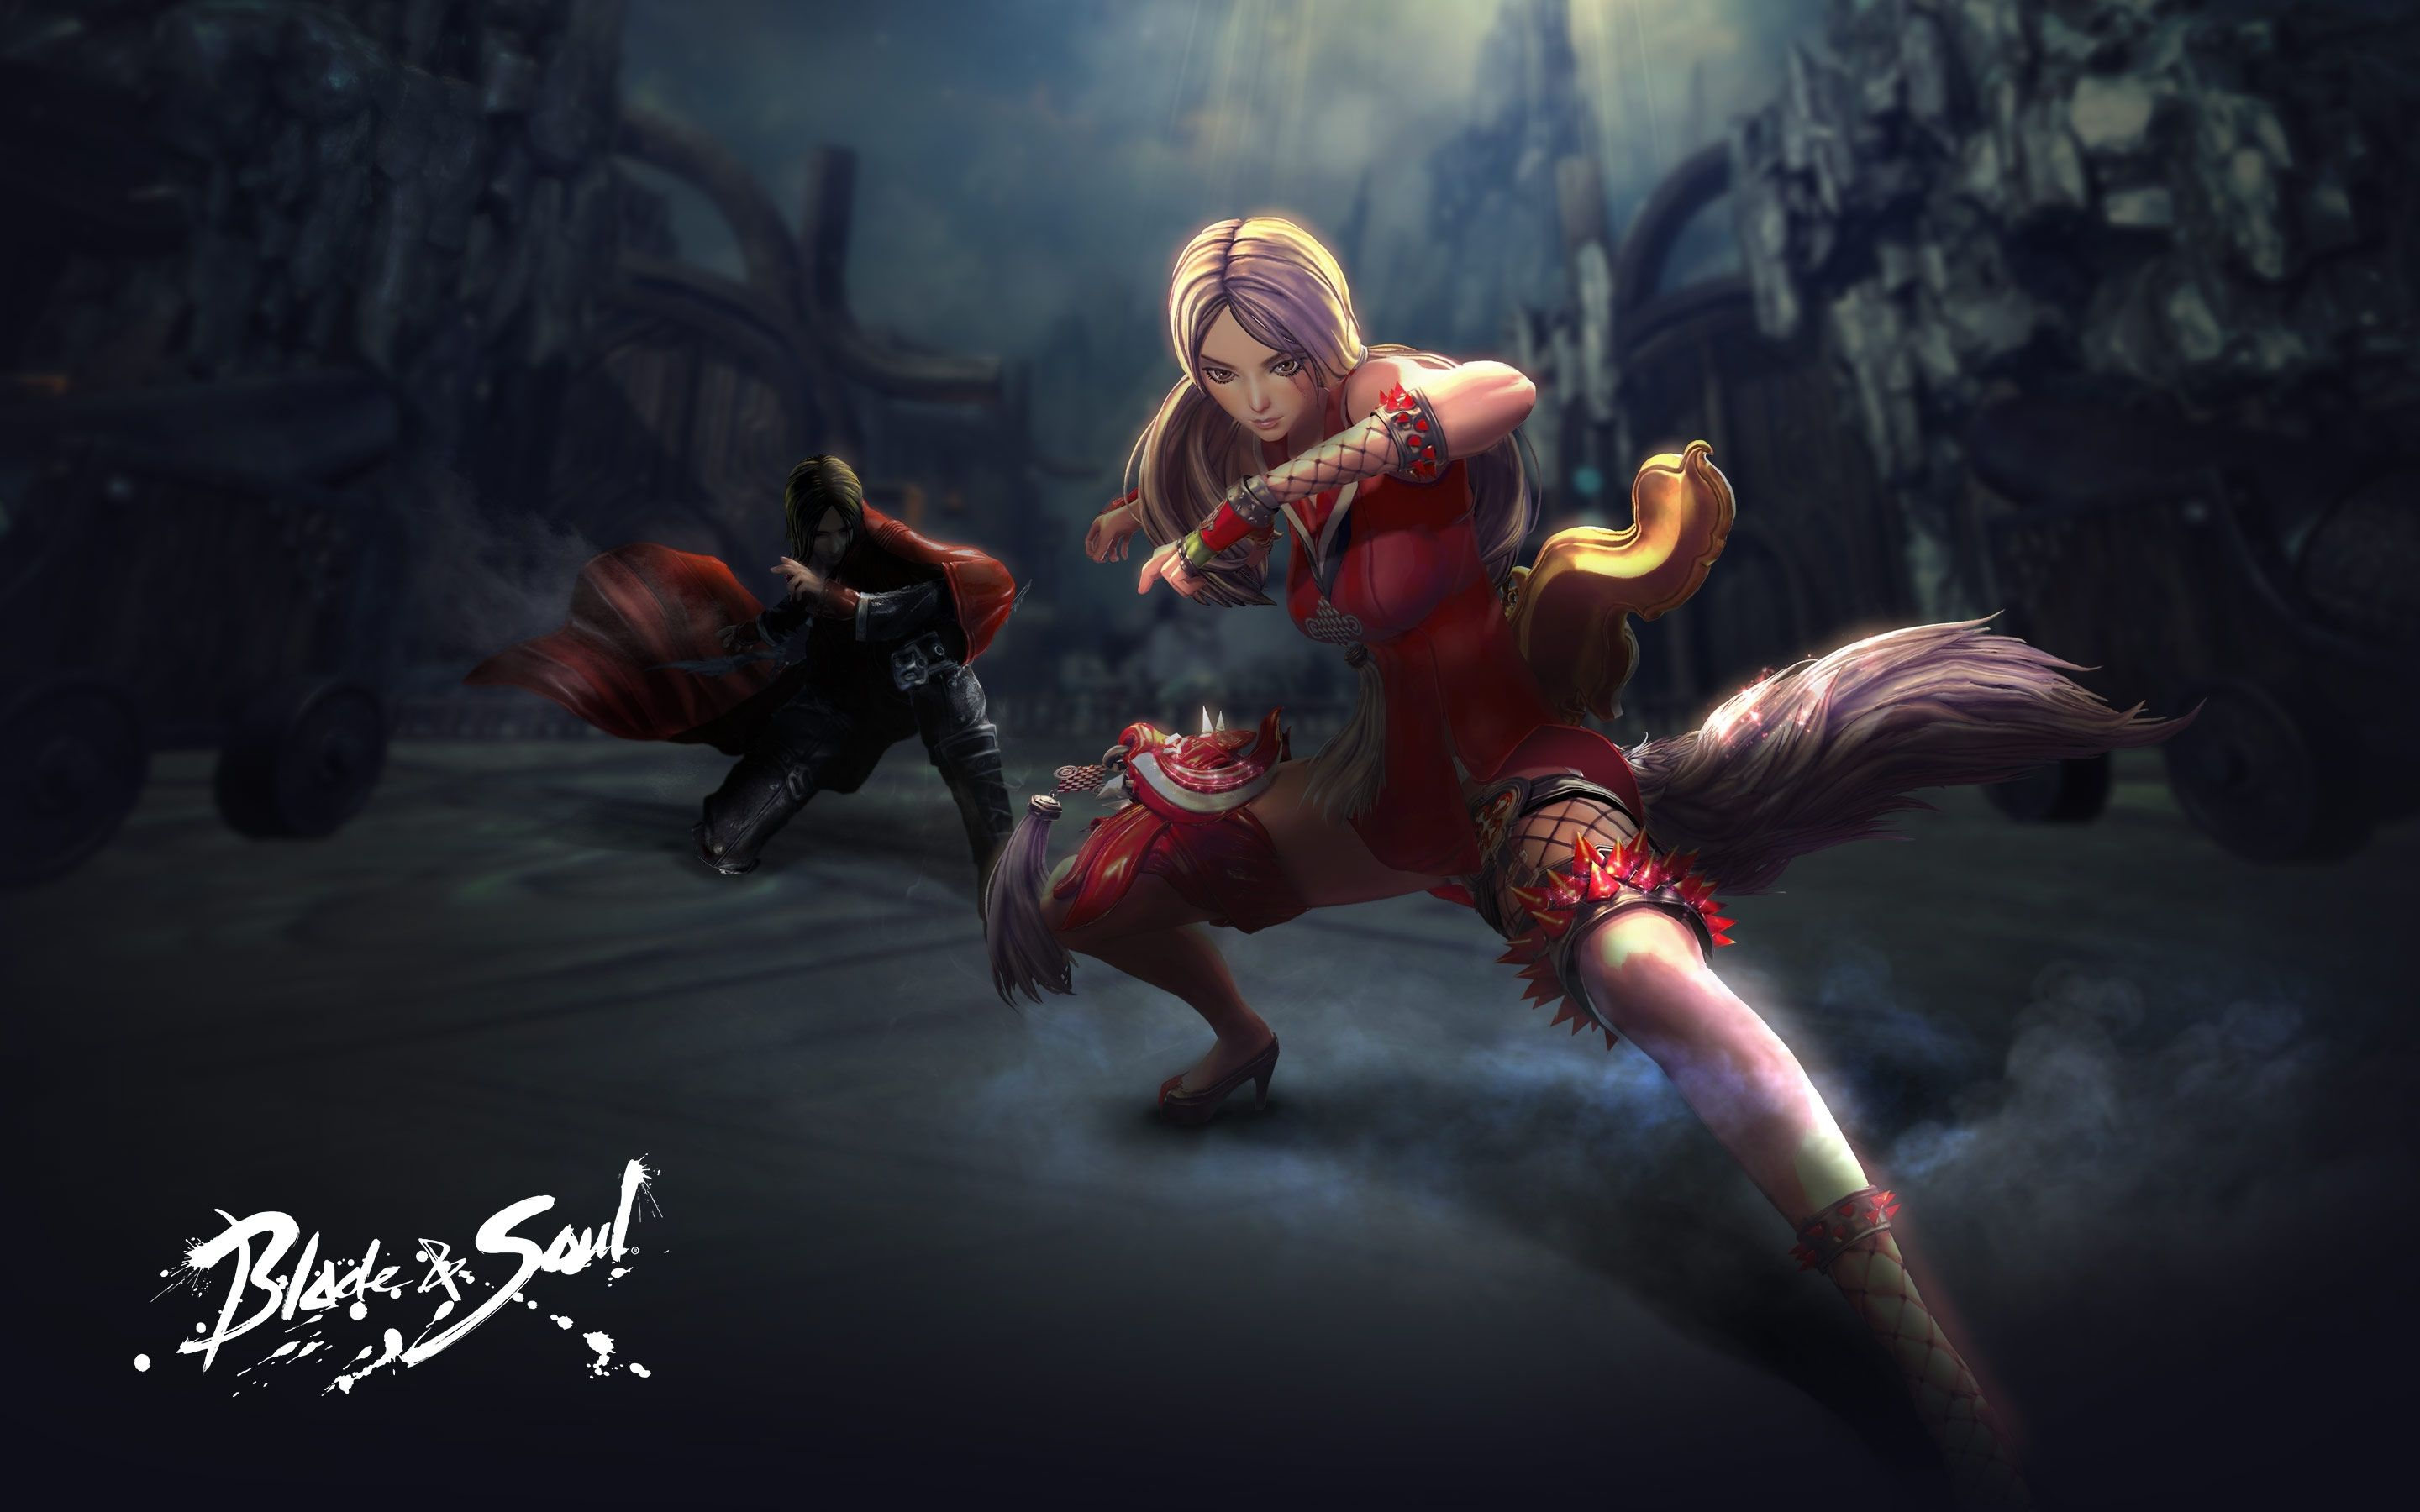 Blade And Soul Wallpapers Hd Blade And Soul Soul Game Blade And Soul Anime